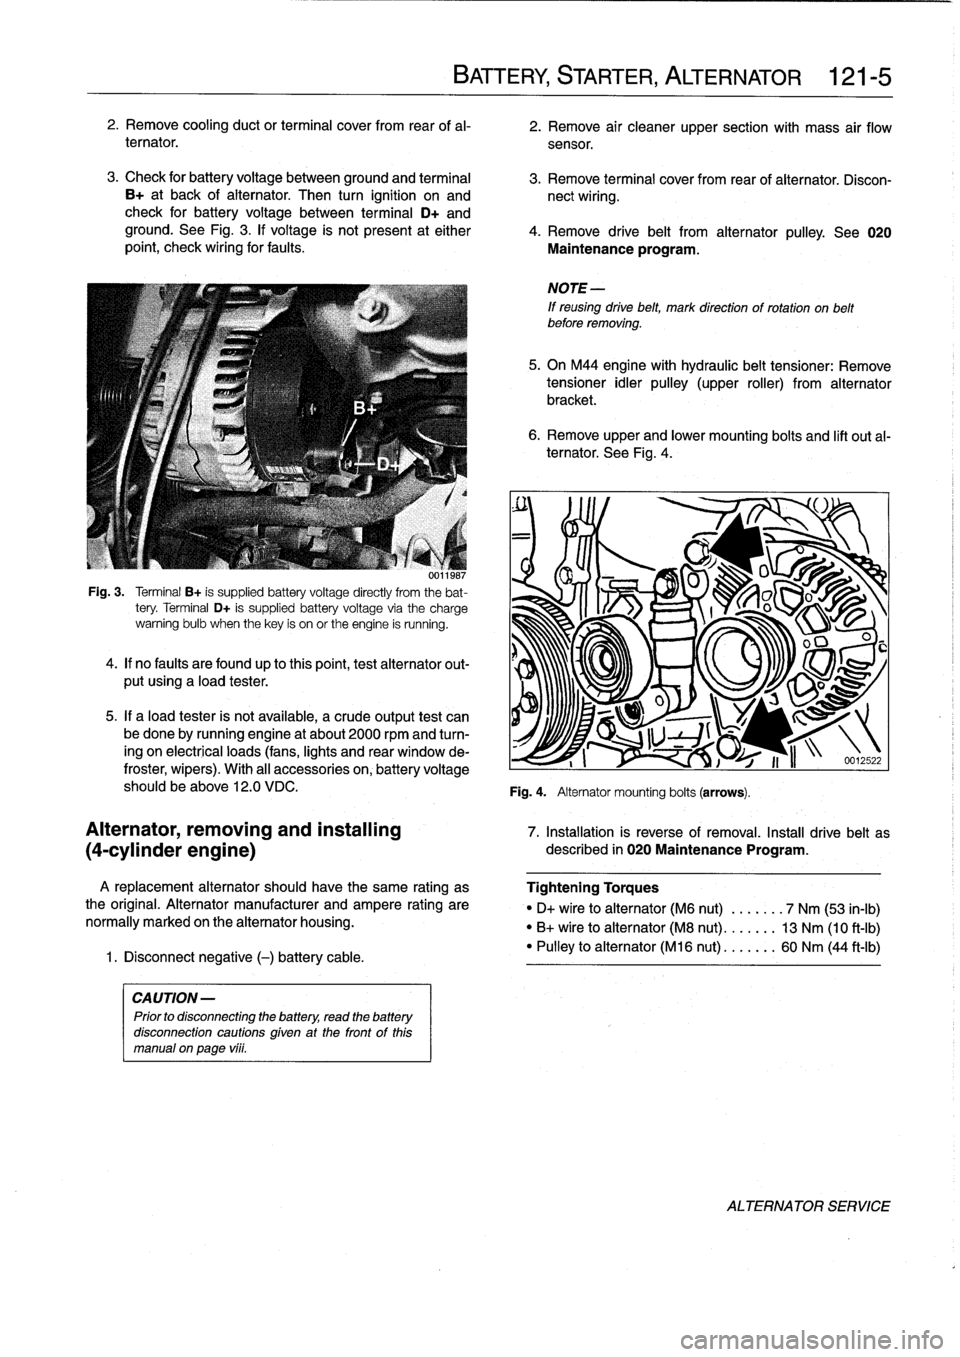 bulb BMW M3 1996 E36 Workshop Manual